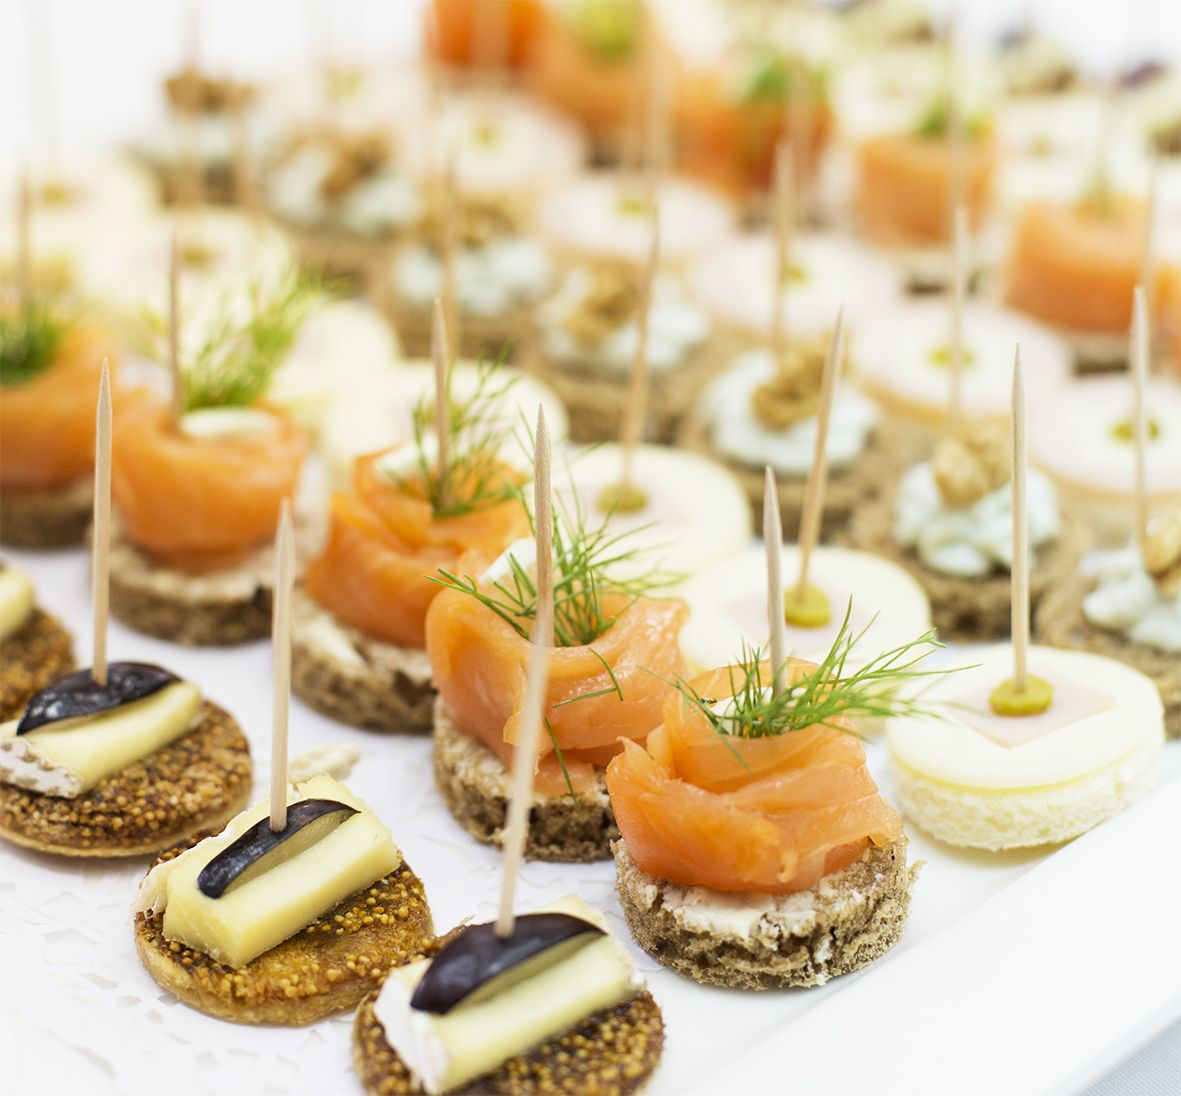 #Canapé: -#Salmon – #Brie with figs – #Turkey & #Cheese. #food #kitchen #catering